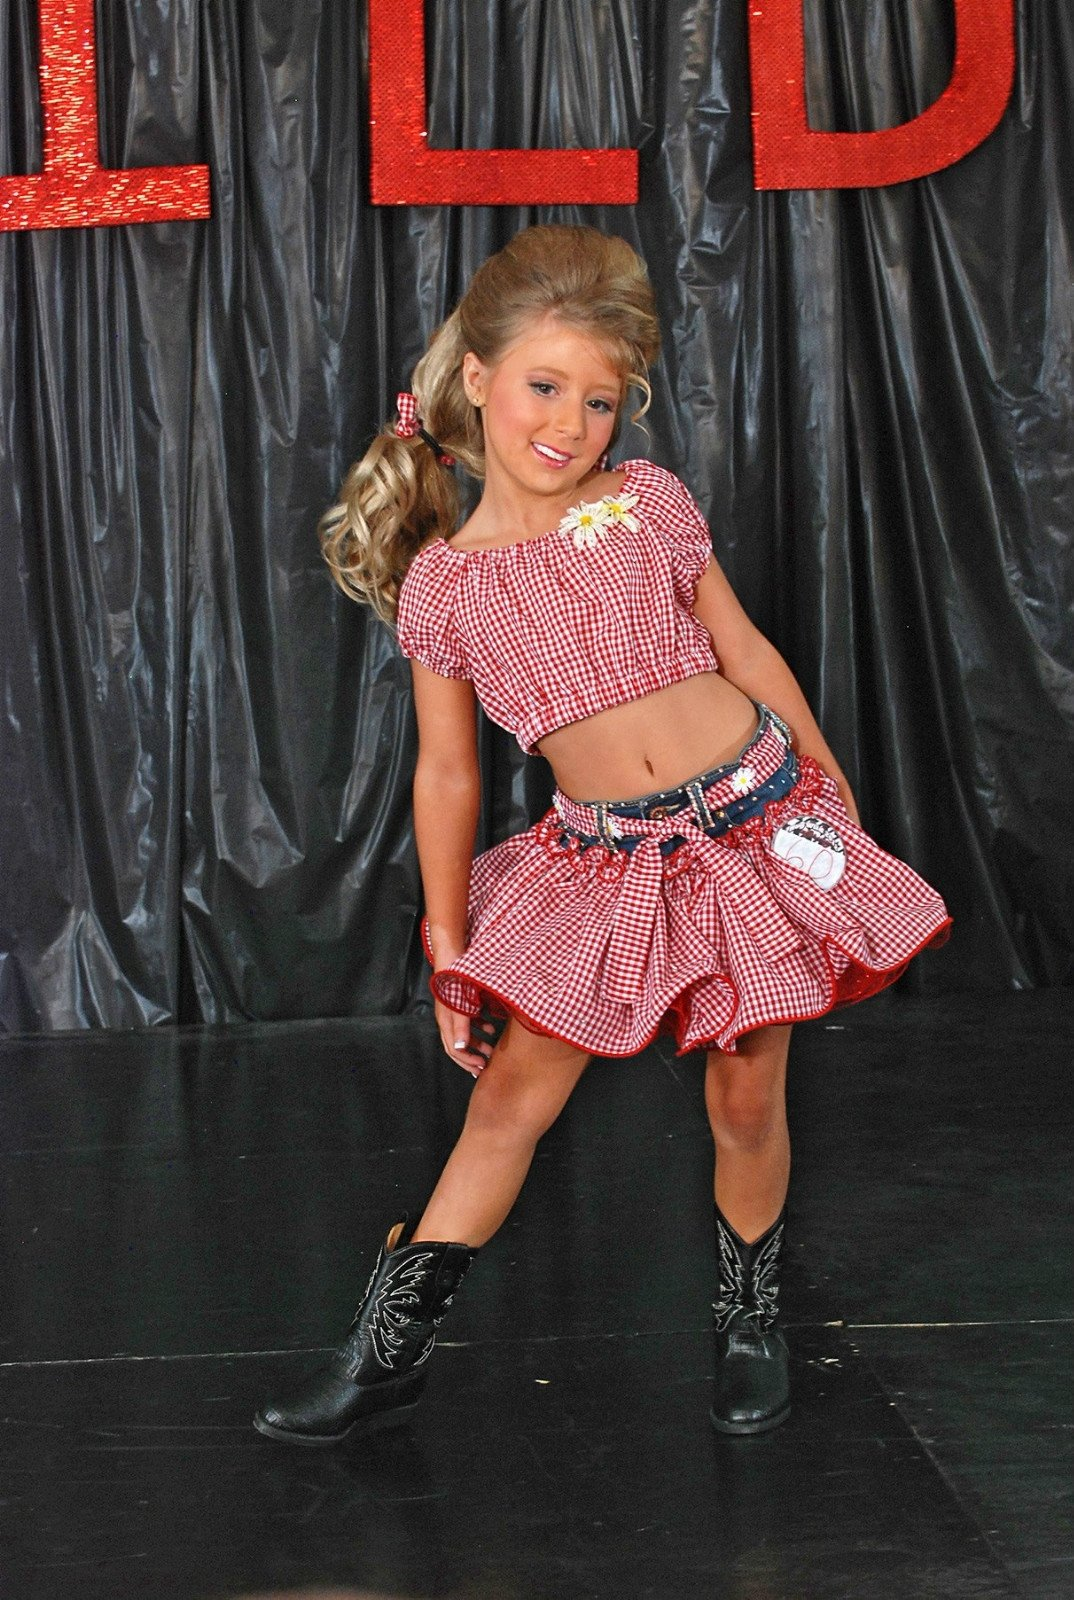 10 Trendy Pageant Outfit Of Choice Ideas daisy duke red white glitz ooc pageant wear daisy dukes